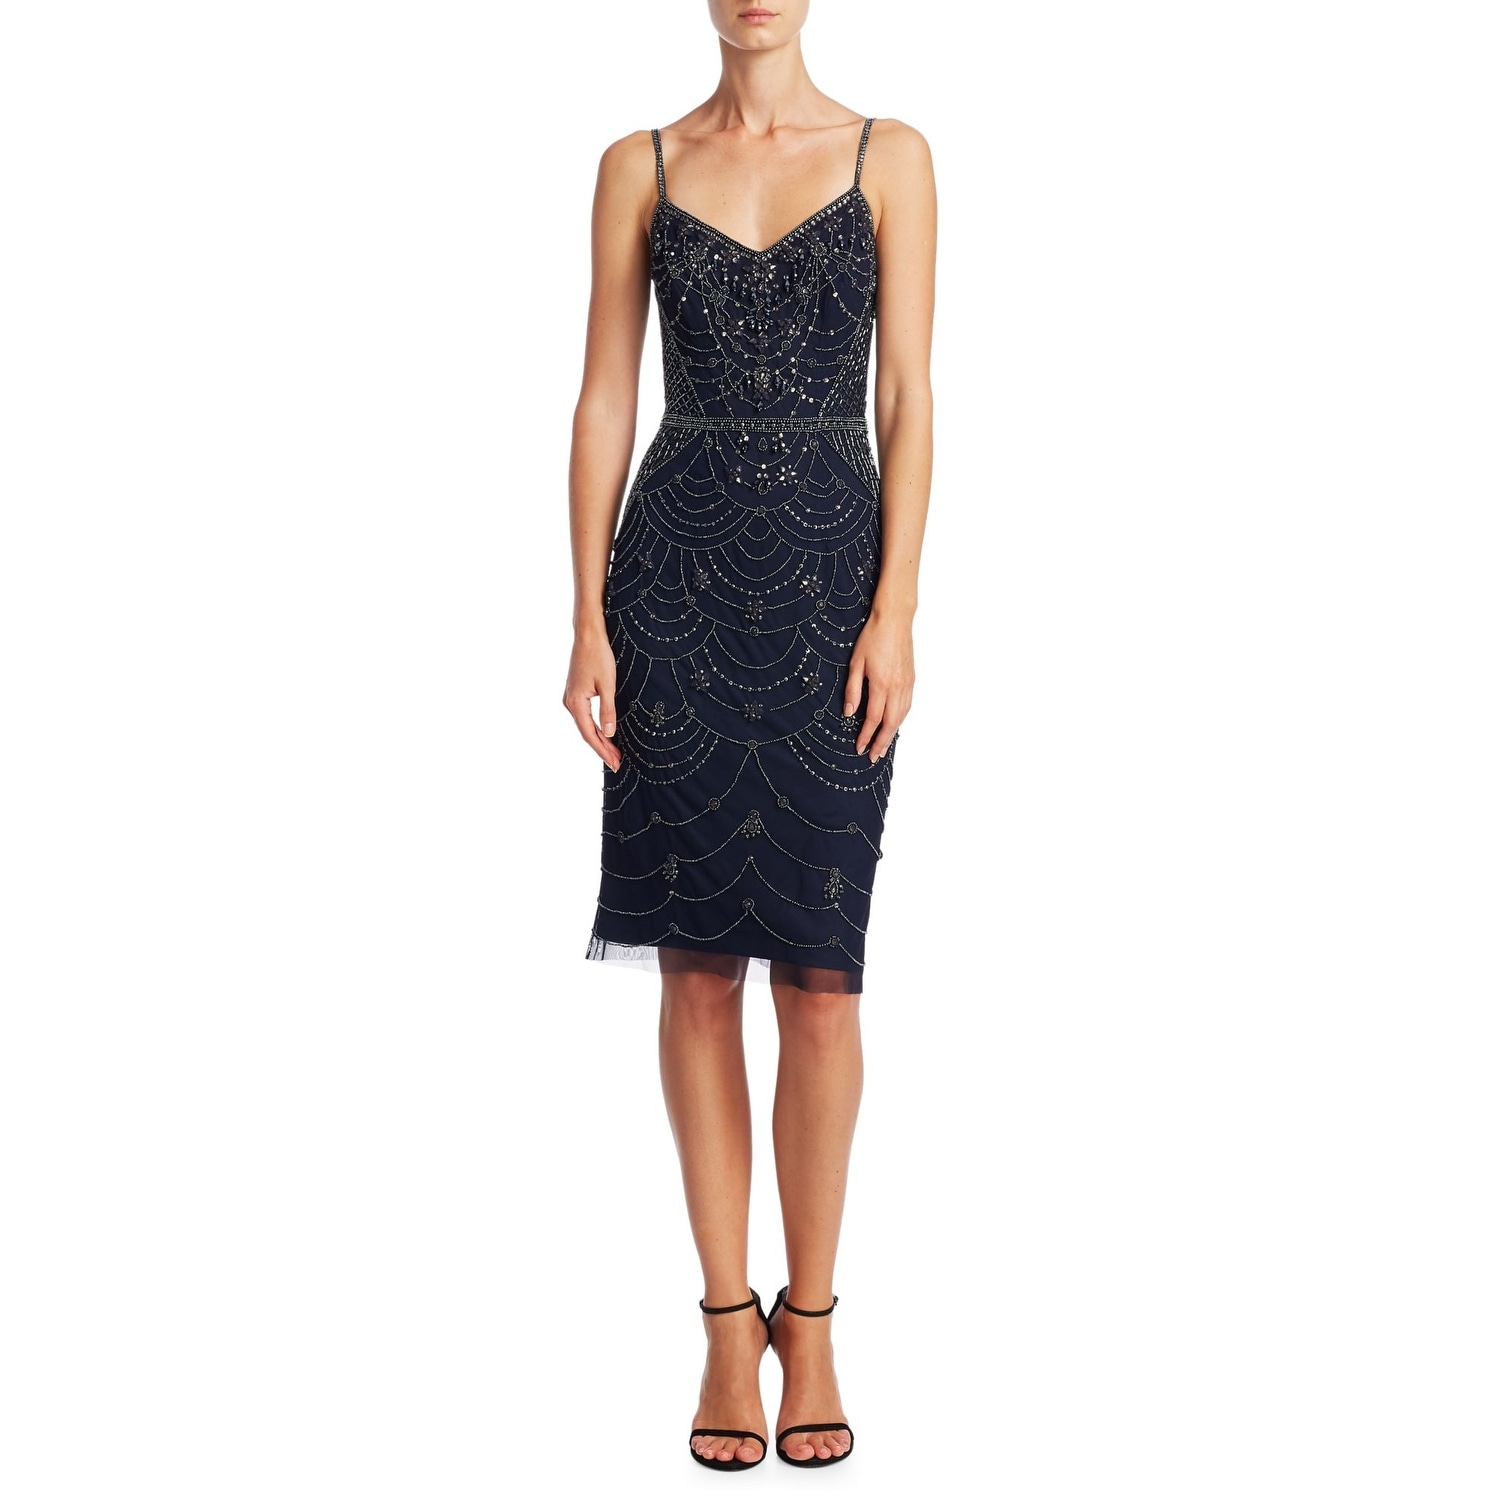 7dbd4ed6 Shop Theia Beaded Spaghetti Strap Cocktail Dress Midnight - Free Shipping  Today - Overstock - 26284506